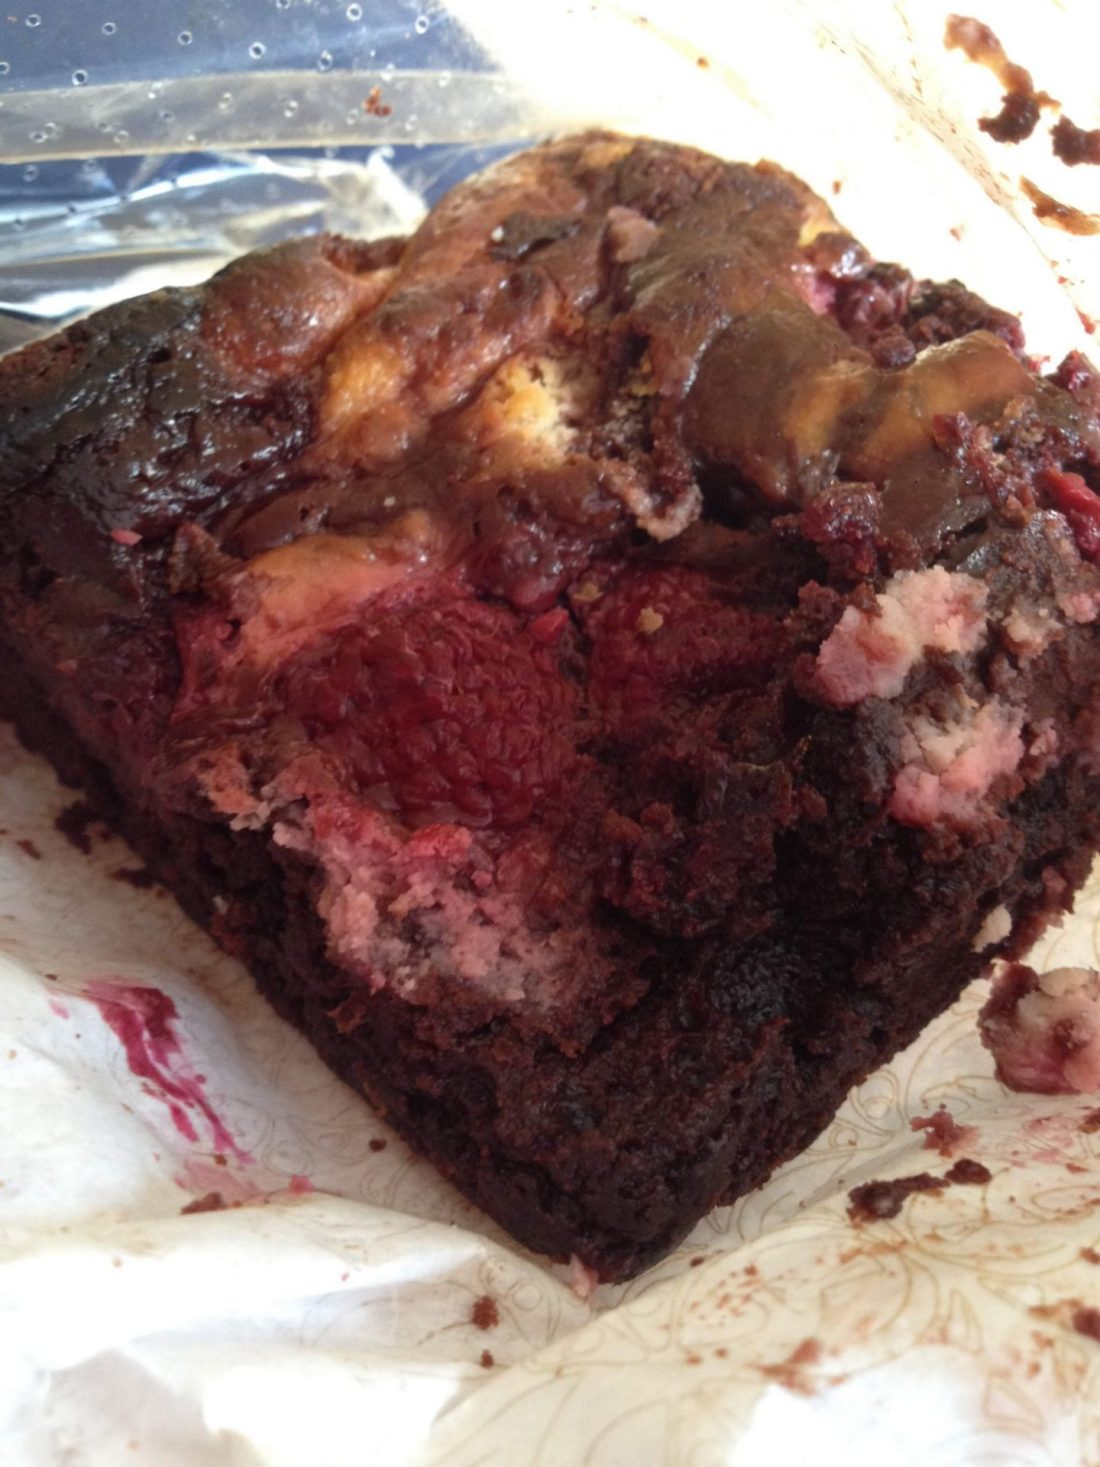 Raspberry and cream cheese brownie from Harrods, London